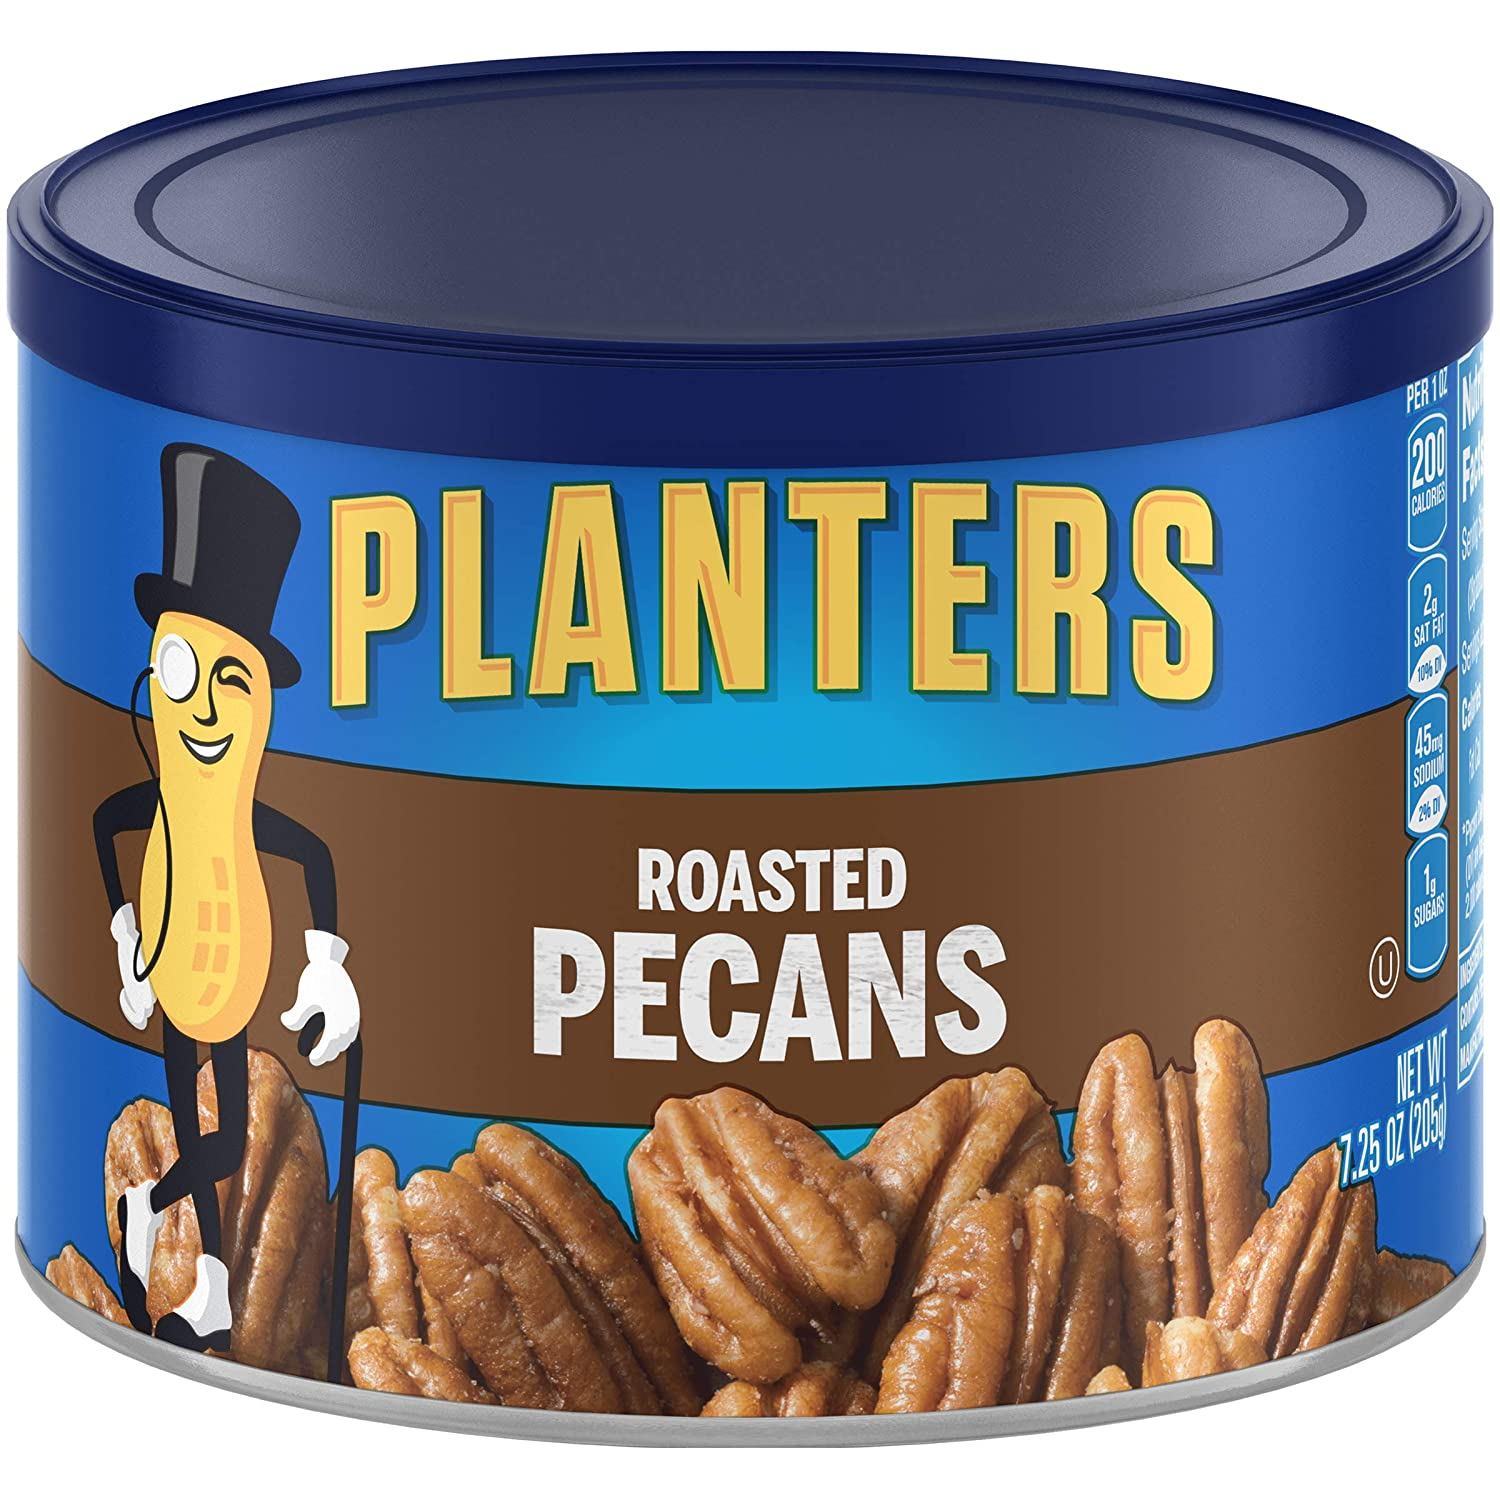 PLANTERS Roasted Pecans, 7.25 oz. Resealable Canister | Salted Pecans | Snacks for Adults | Kids Snacks | Vegan Snacks, Kosher